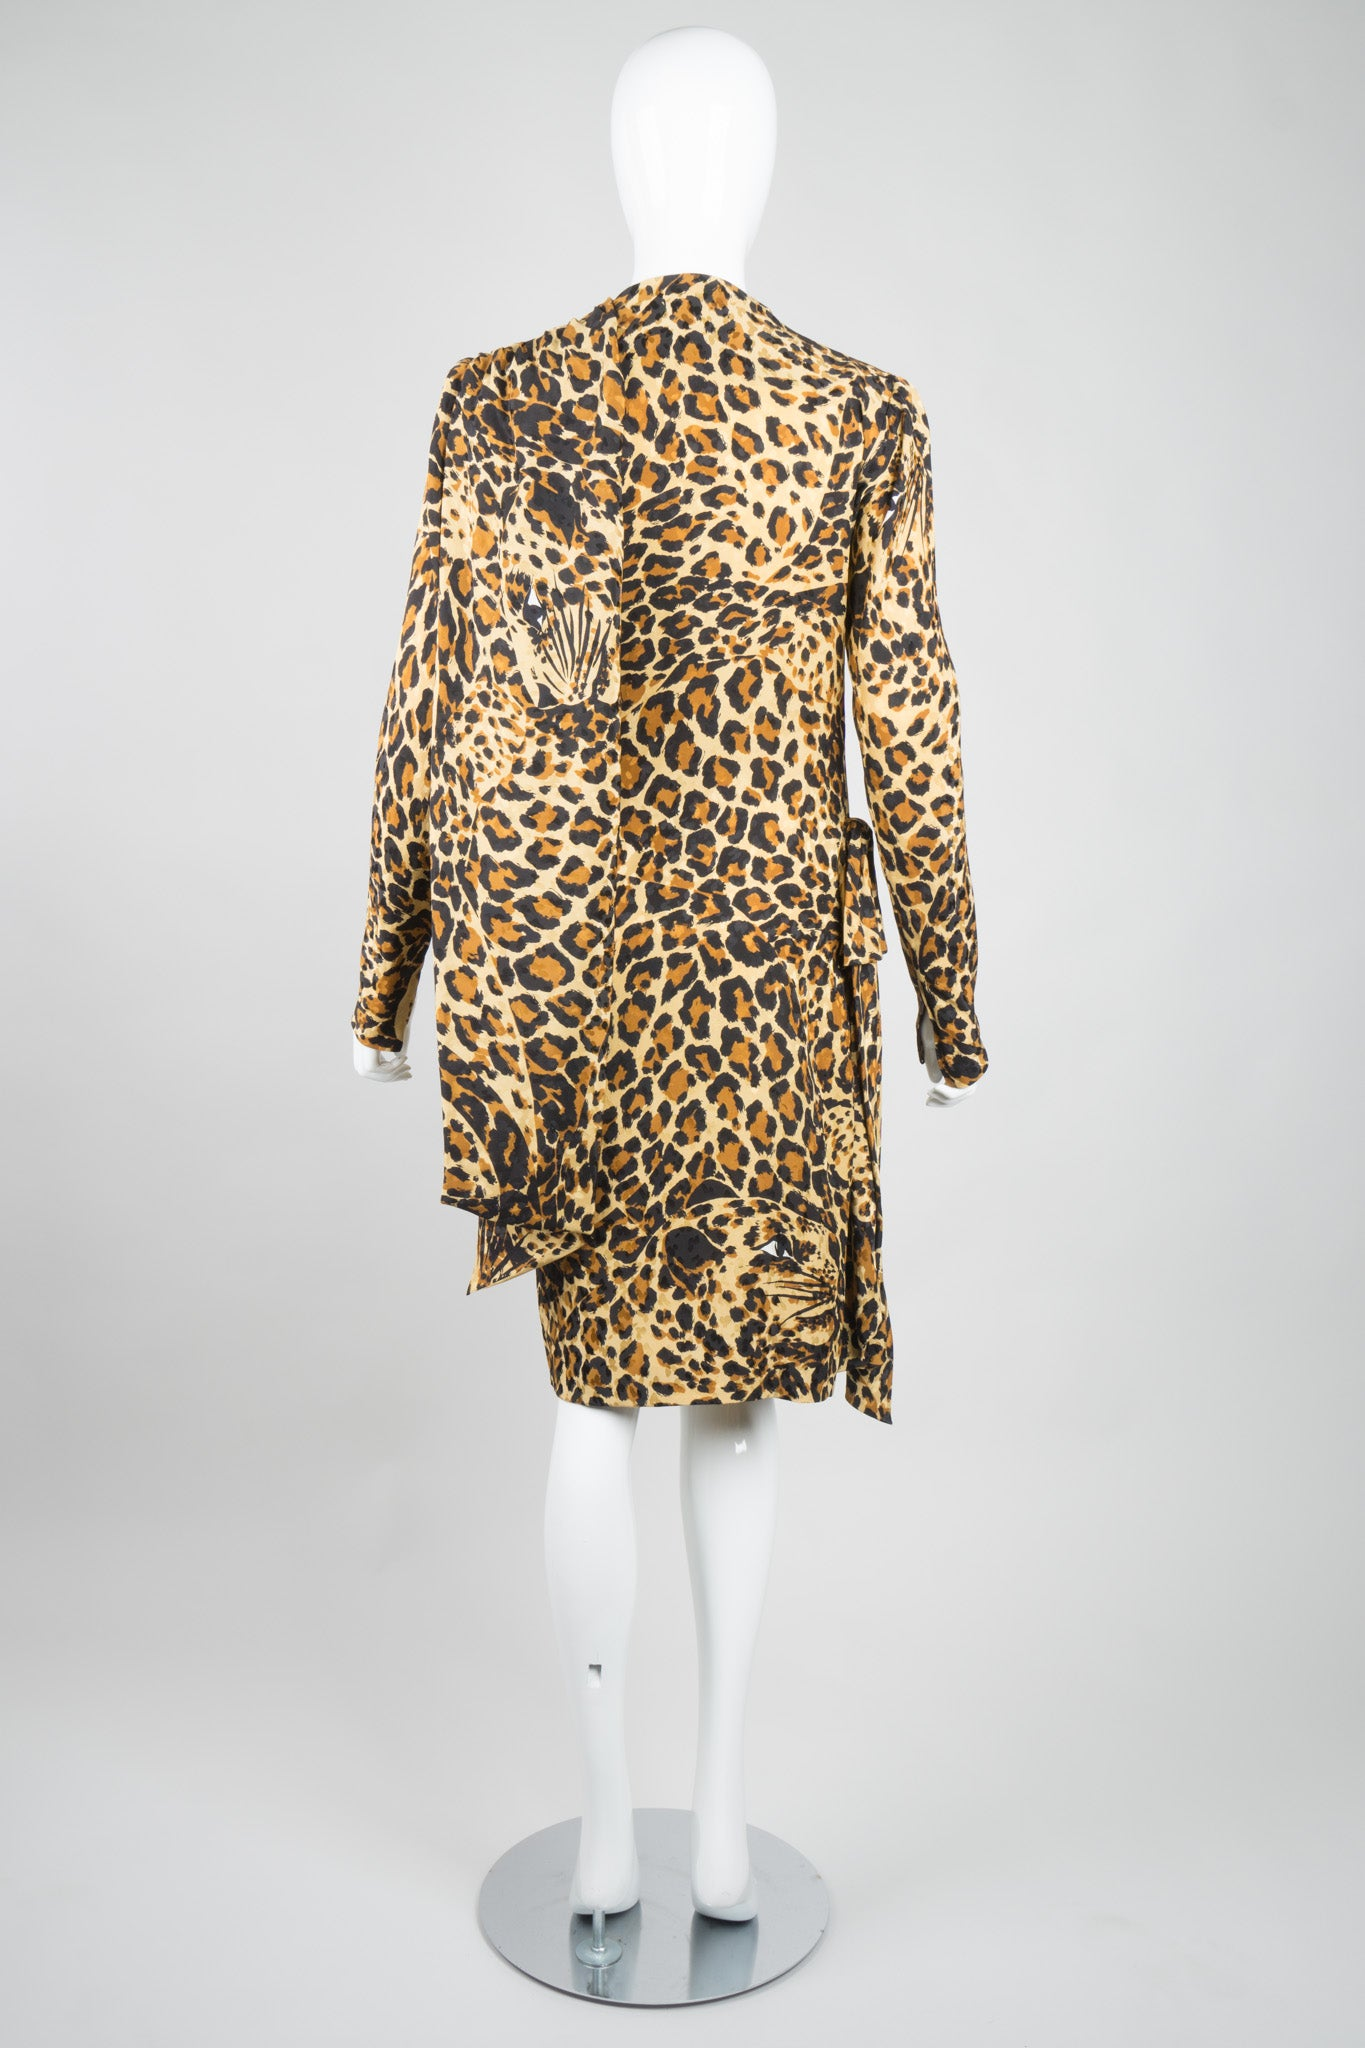 YSL Yves Saint Laurent Silk Leopard Scarf Wrap Dress